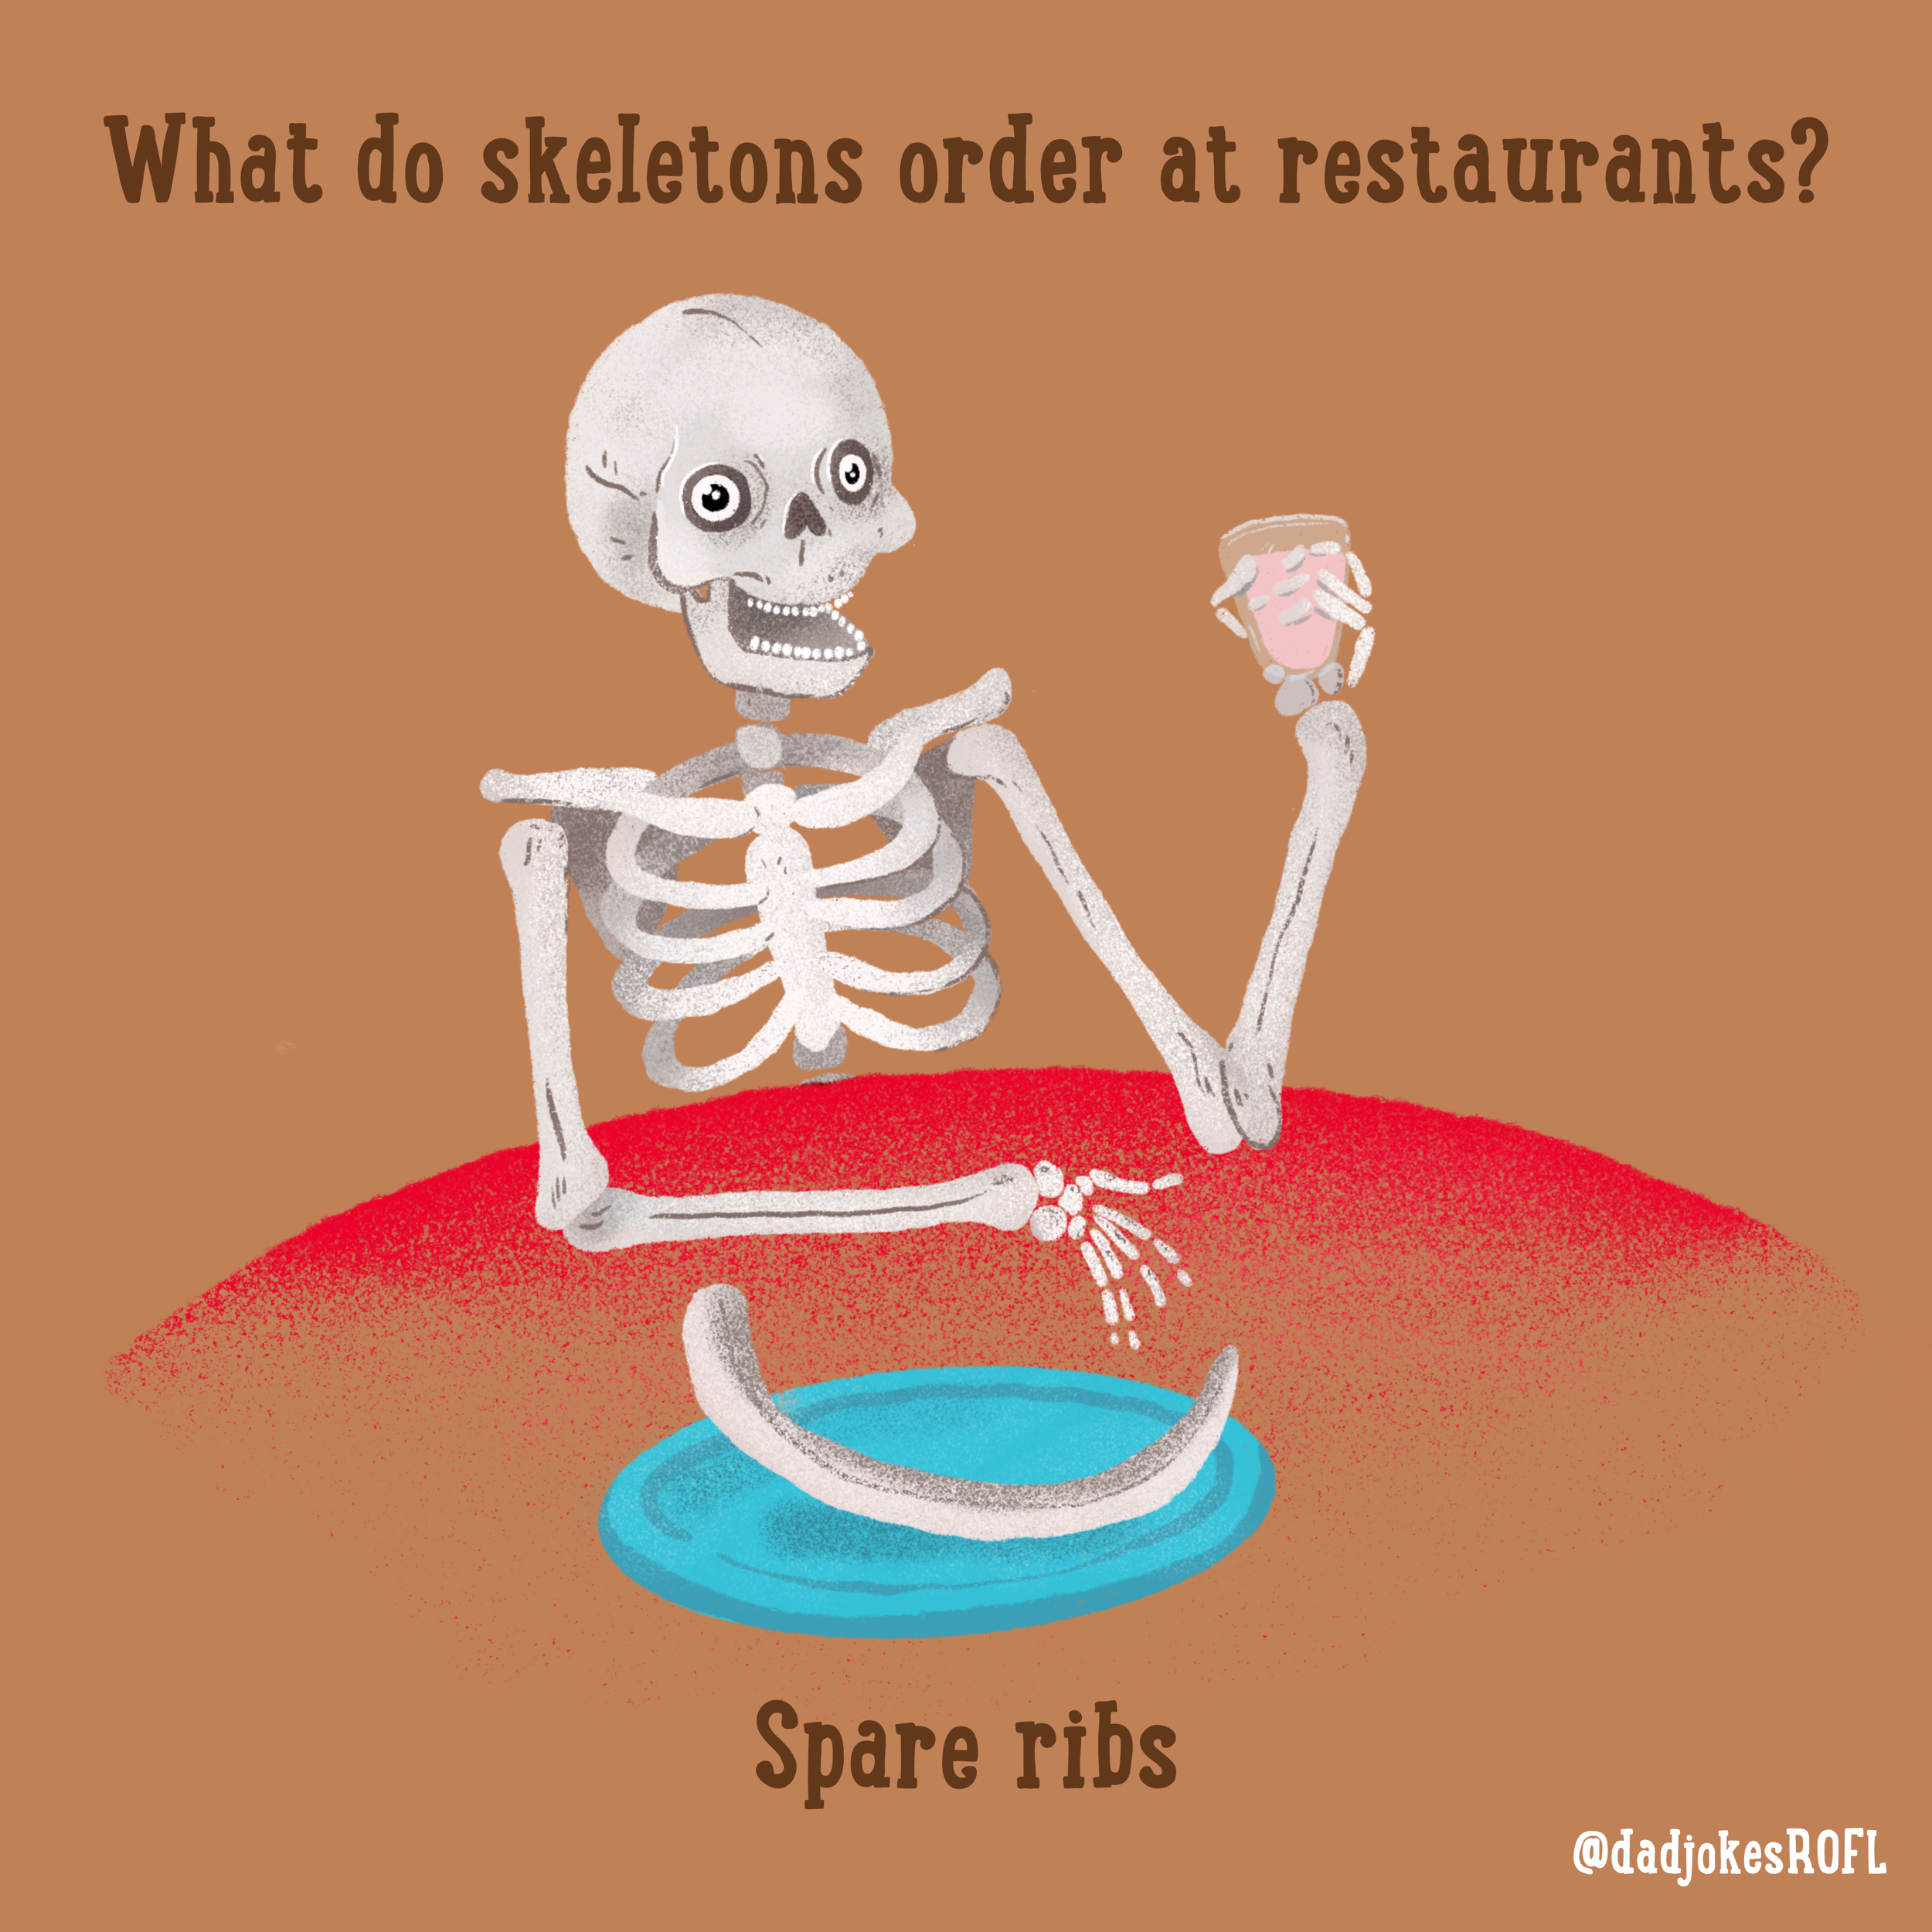 What do skeletons order at restaurants? Spare ribs